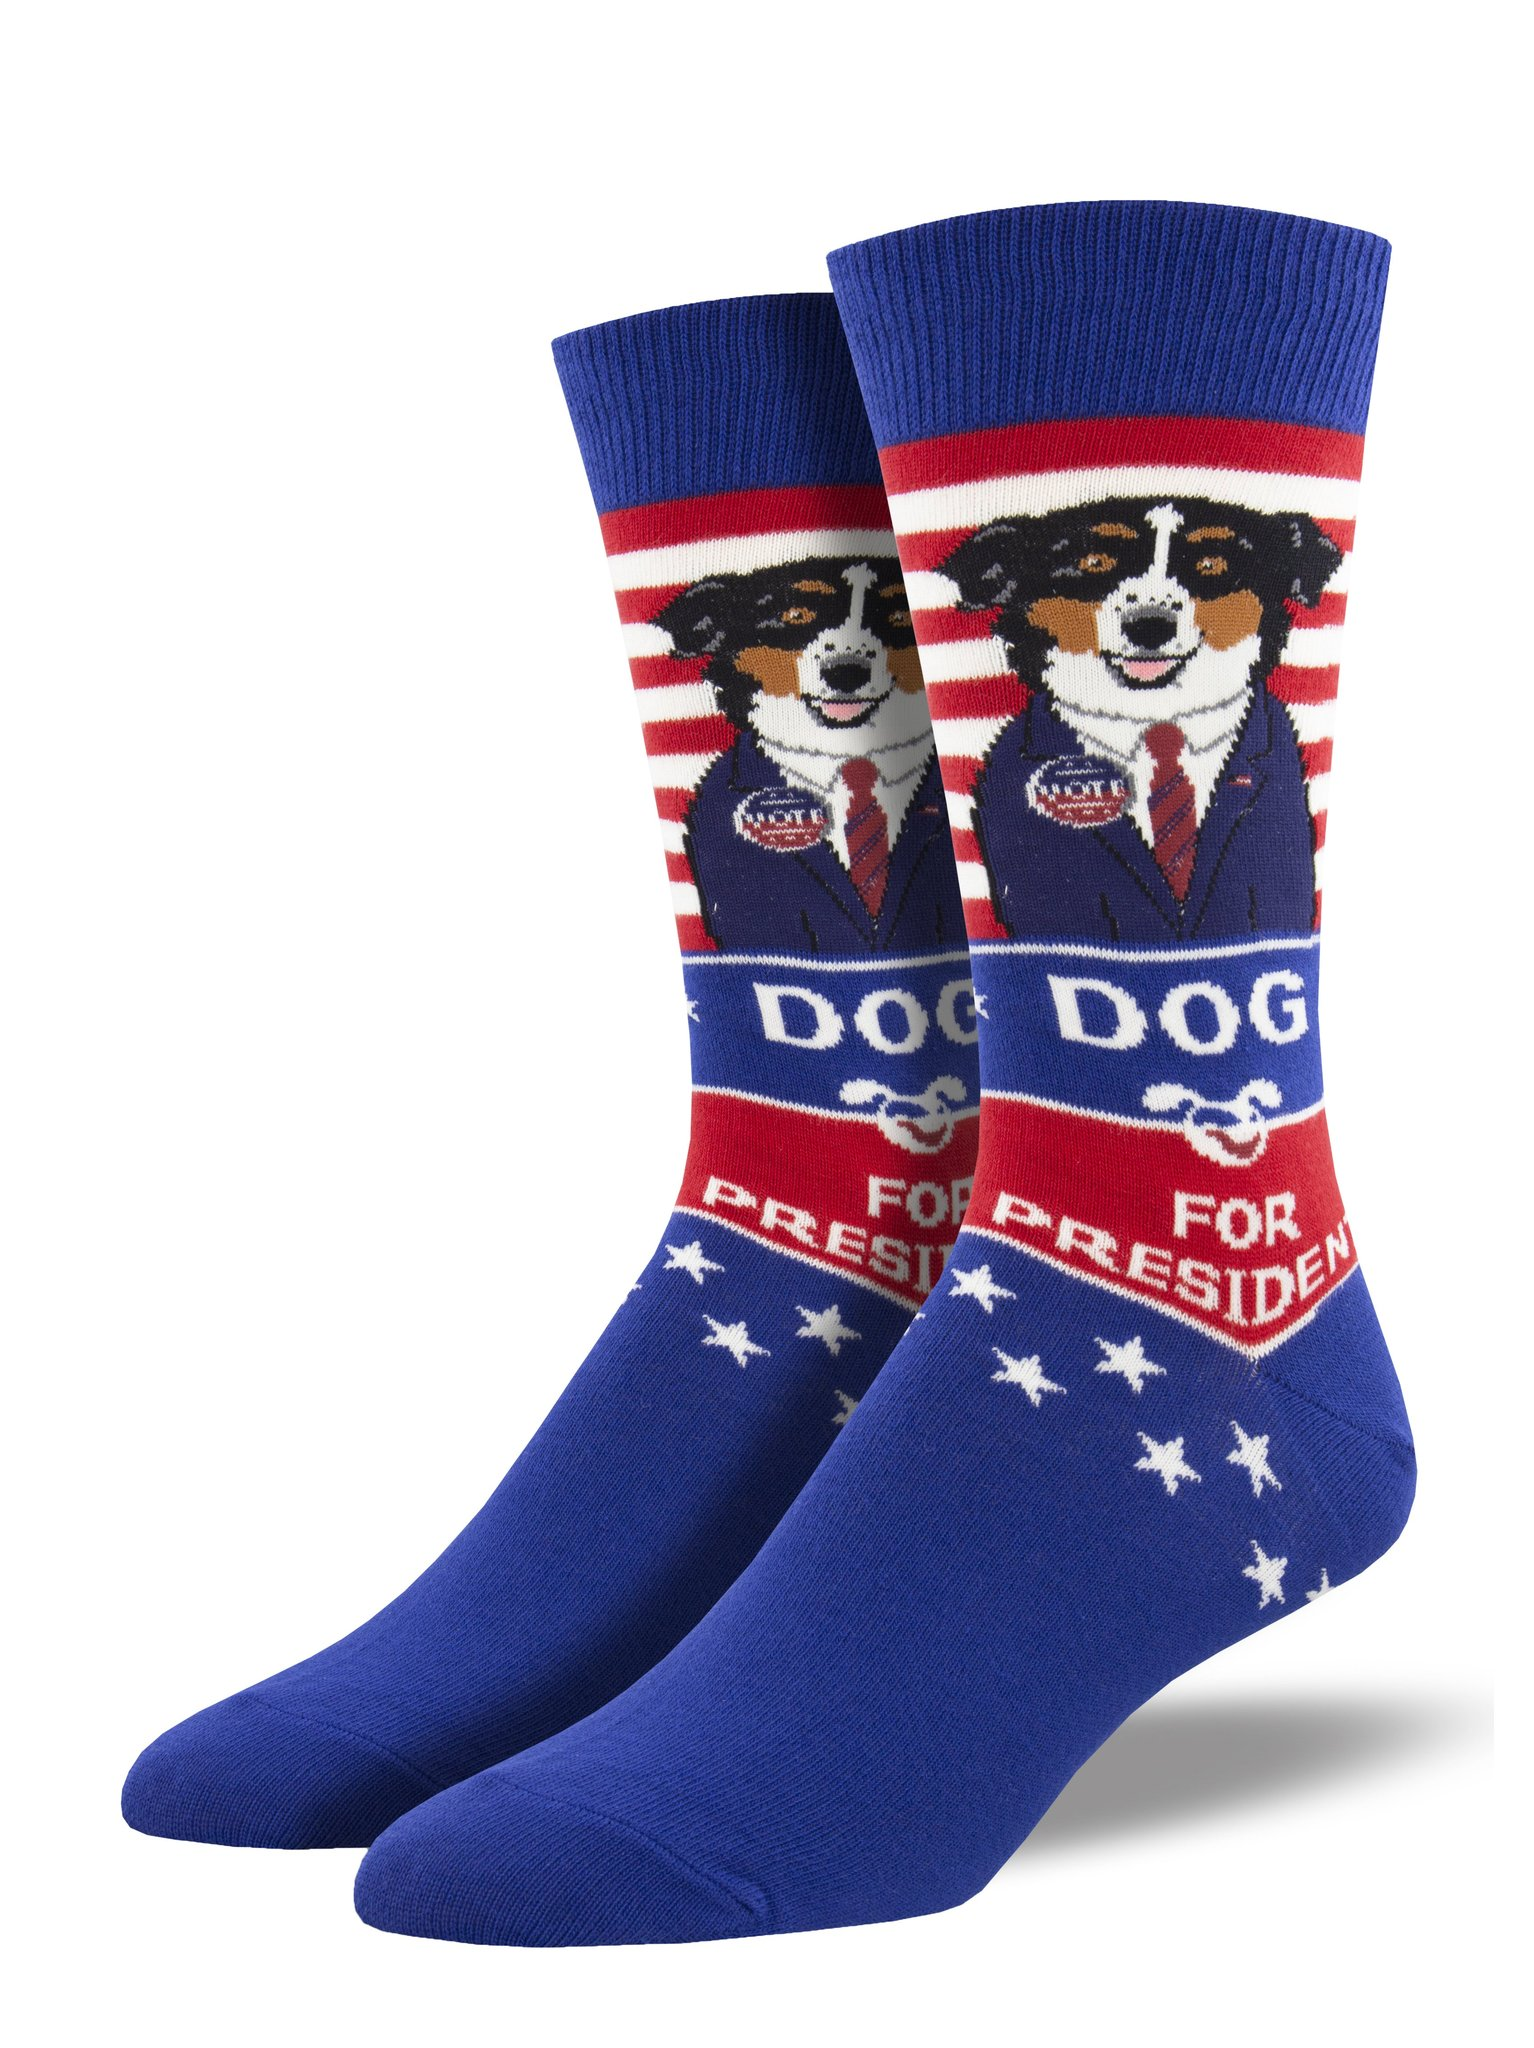 Dog for President Socks, Men's